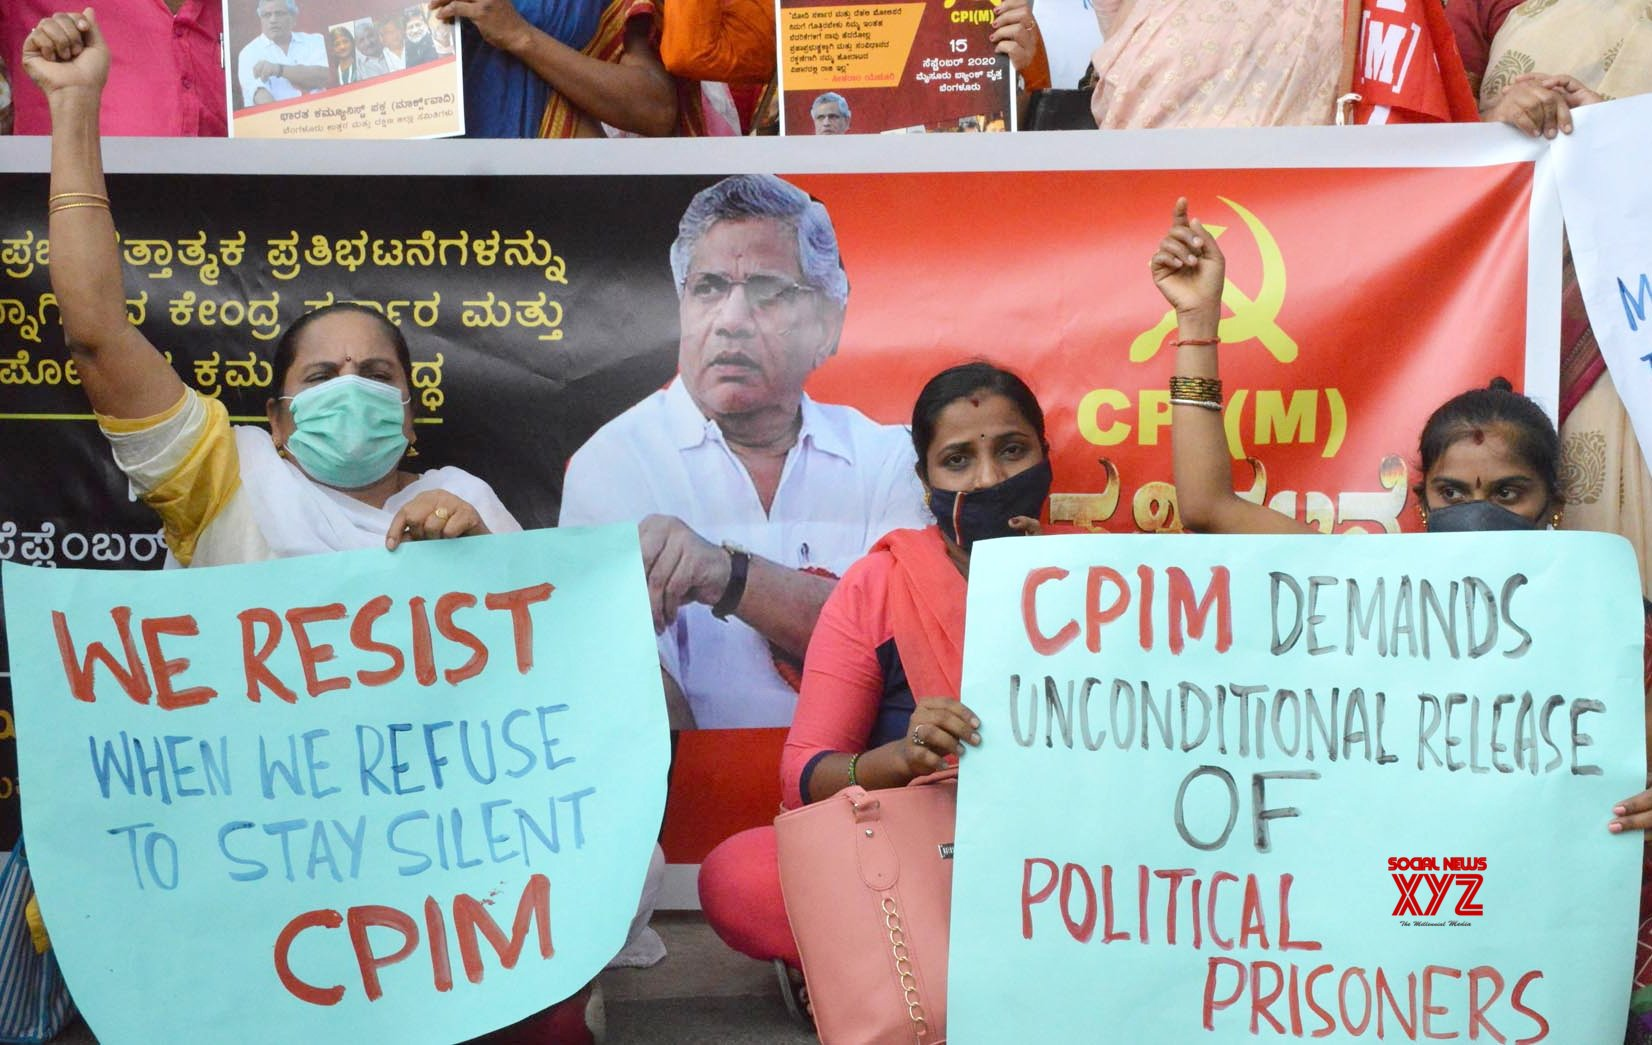 Bengaluru: CPI - M protests against 'false criminal charges' on Yechury #Gallery